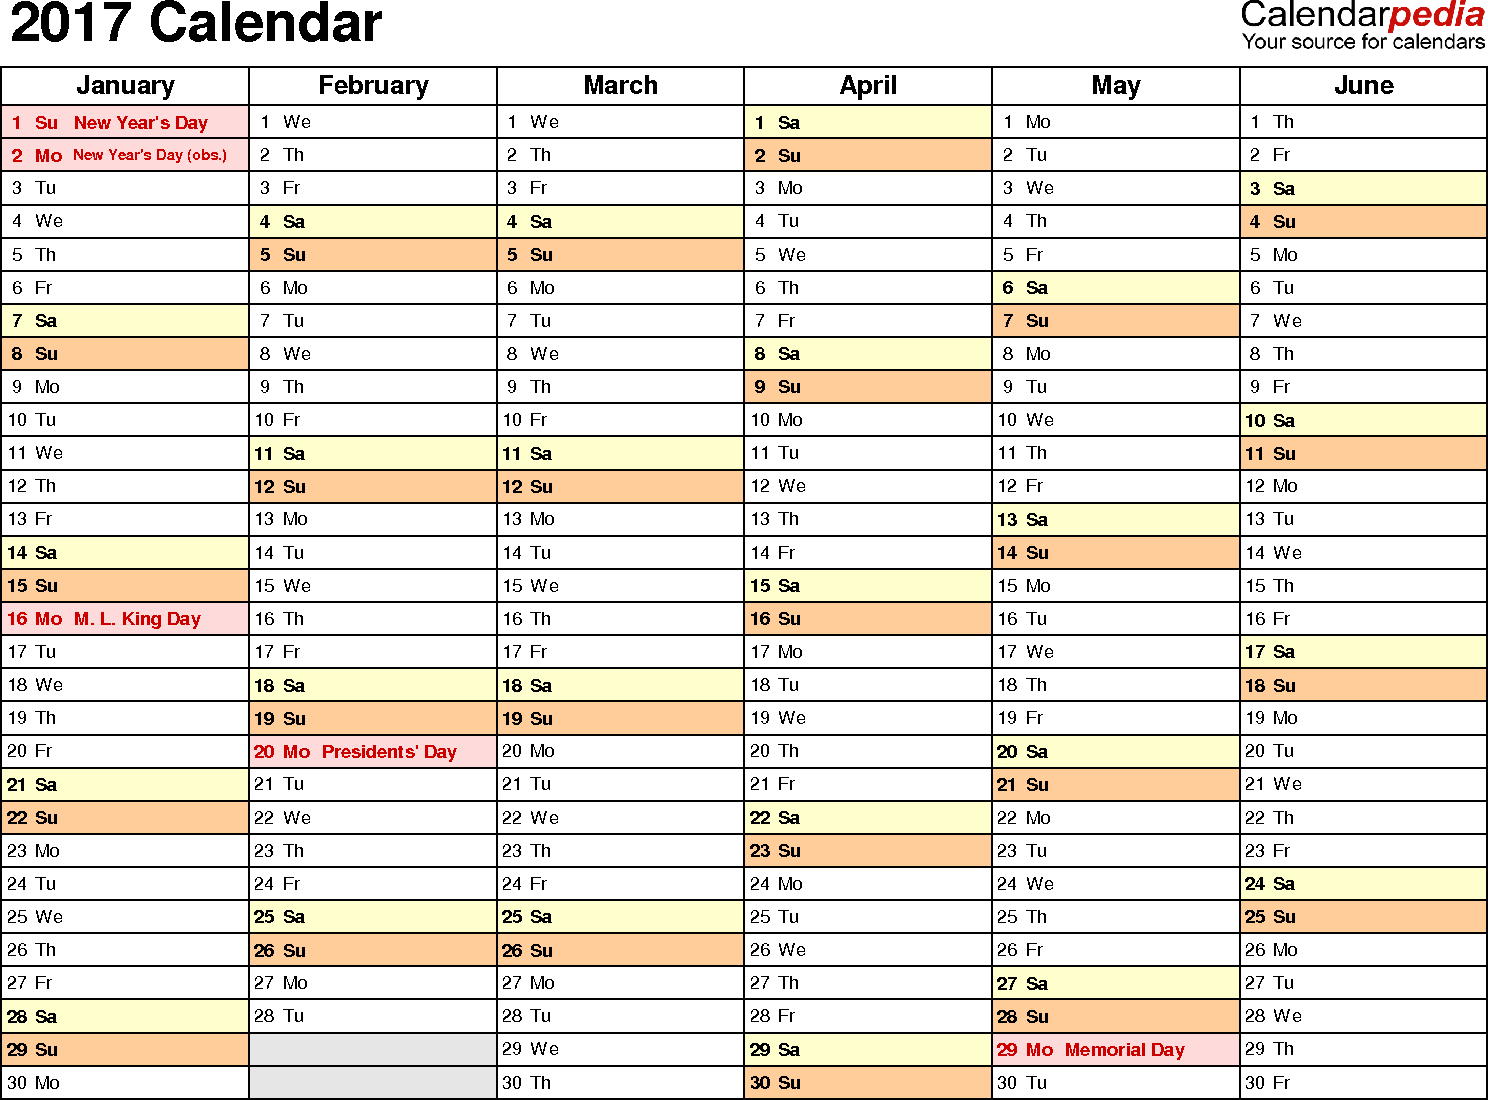 Ediblewildsus  Seductive  Calendar  Download  Free Printable Excel Templates Xls With Glamorous Template   Calendar For Excel Months Horizontally  Pages Landscape Orientation With Astounding Excel Quartiles Also Shift Enter Excel In Addition Growth Rate Excel And Pie Of Pie Excel  As Well As Vba In Excel Examples Additionally Random Pick In Excel From Calendarpediacom With Ediblewildsus  Glamorous  Calendar  Download  Free Printable Excel Templates Xls With Astounding Template   Calendar For Excel Months Horizontally  Pages Landscape Orientation And Seductive Excel Quartiles Also Shift Enter Excel In Addition Growth Rate Excel From Calendarpediacom